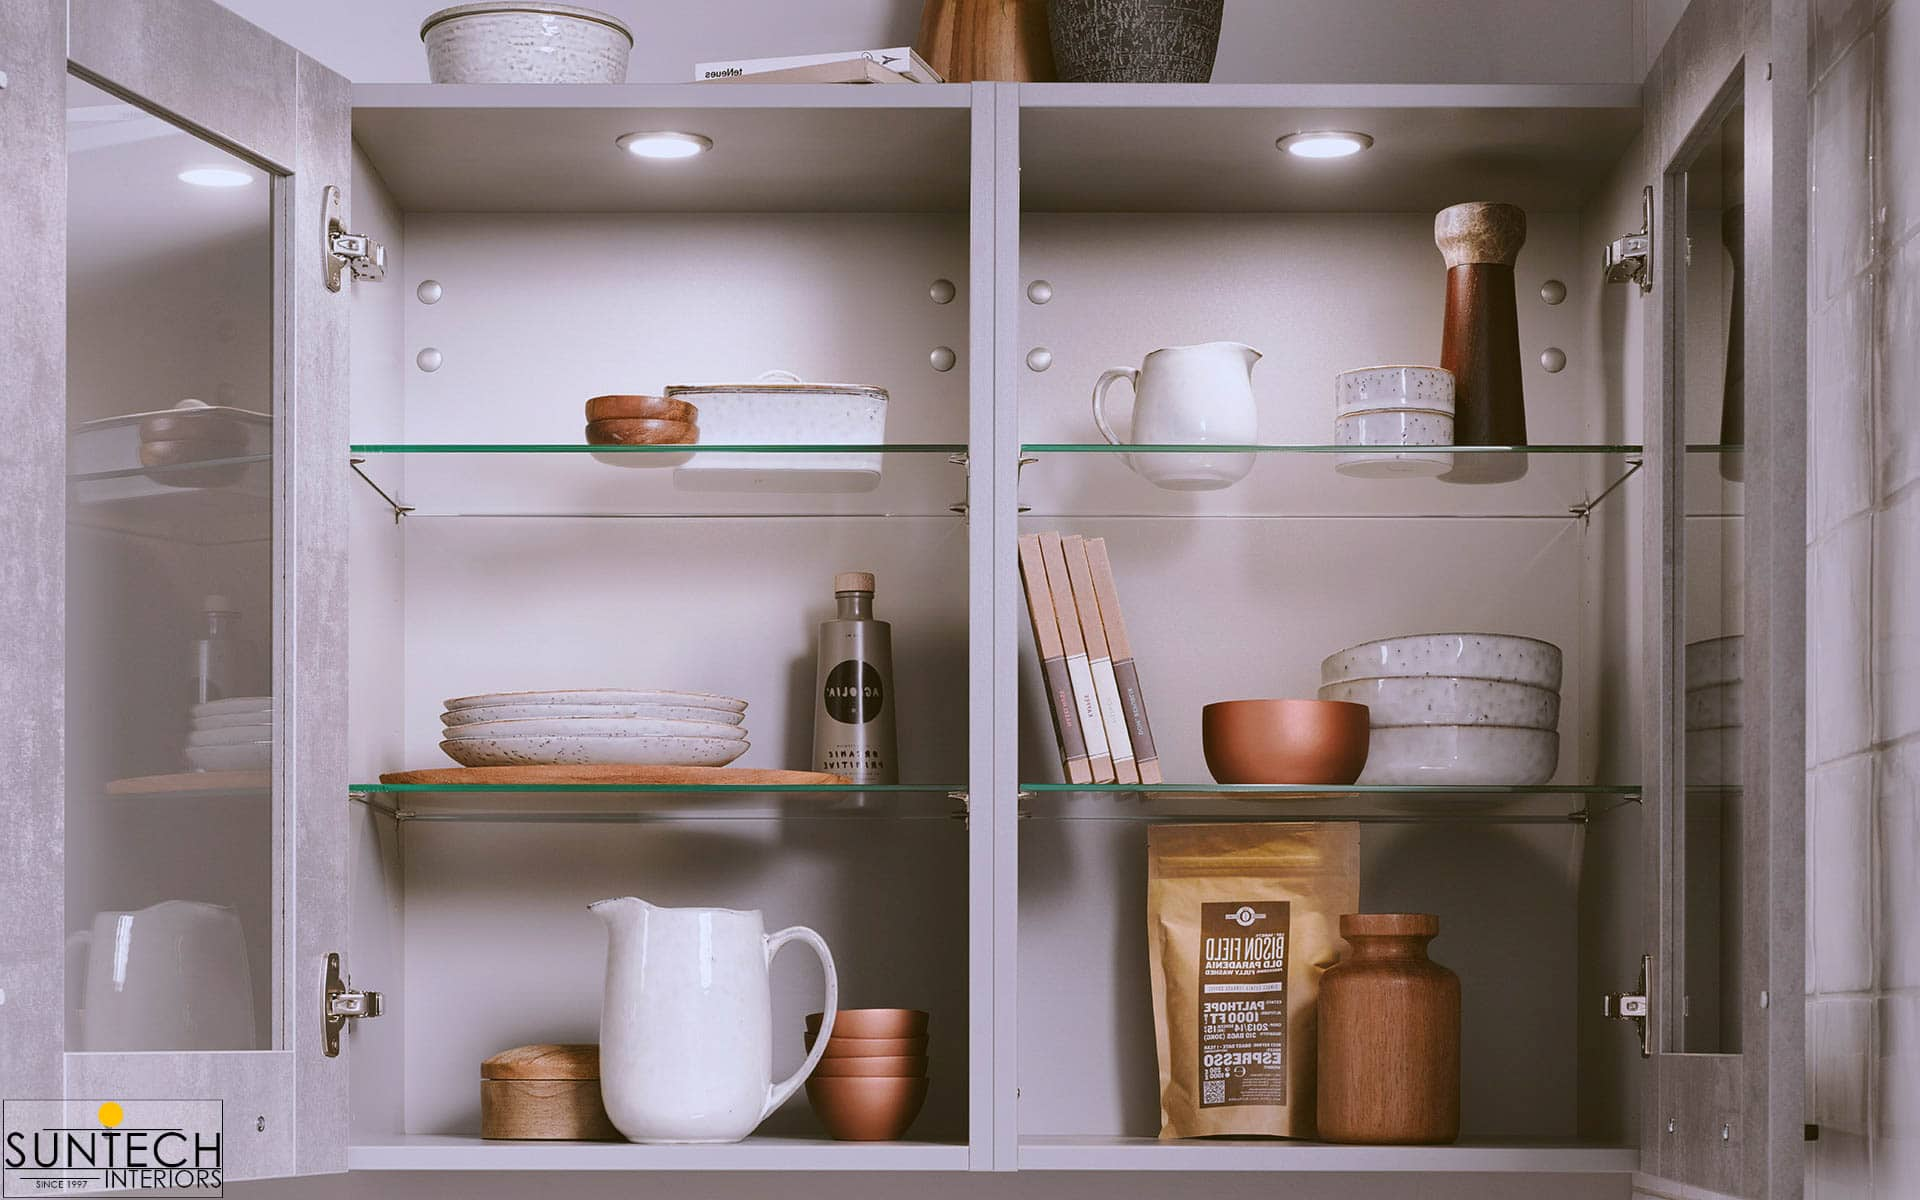 Things You Should Never Store In Overhead Cabinets